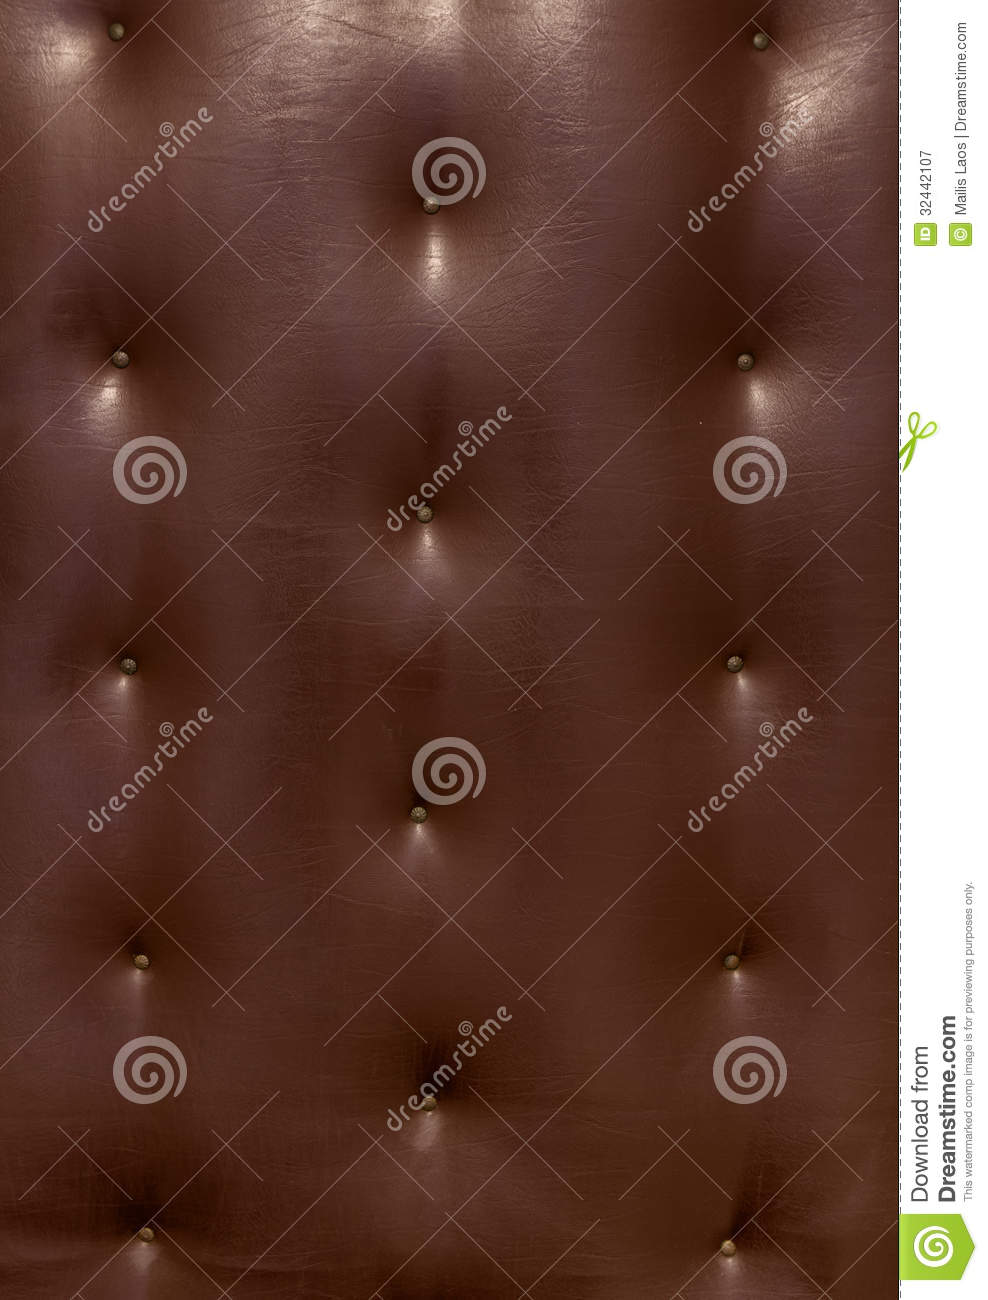 leather texture royalty free stock photography image 32442107. Black Bedroom Furniture Sets. Home Design Ideas